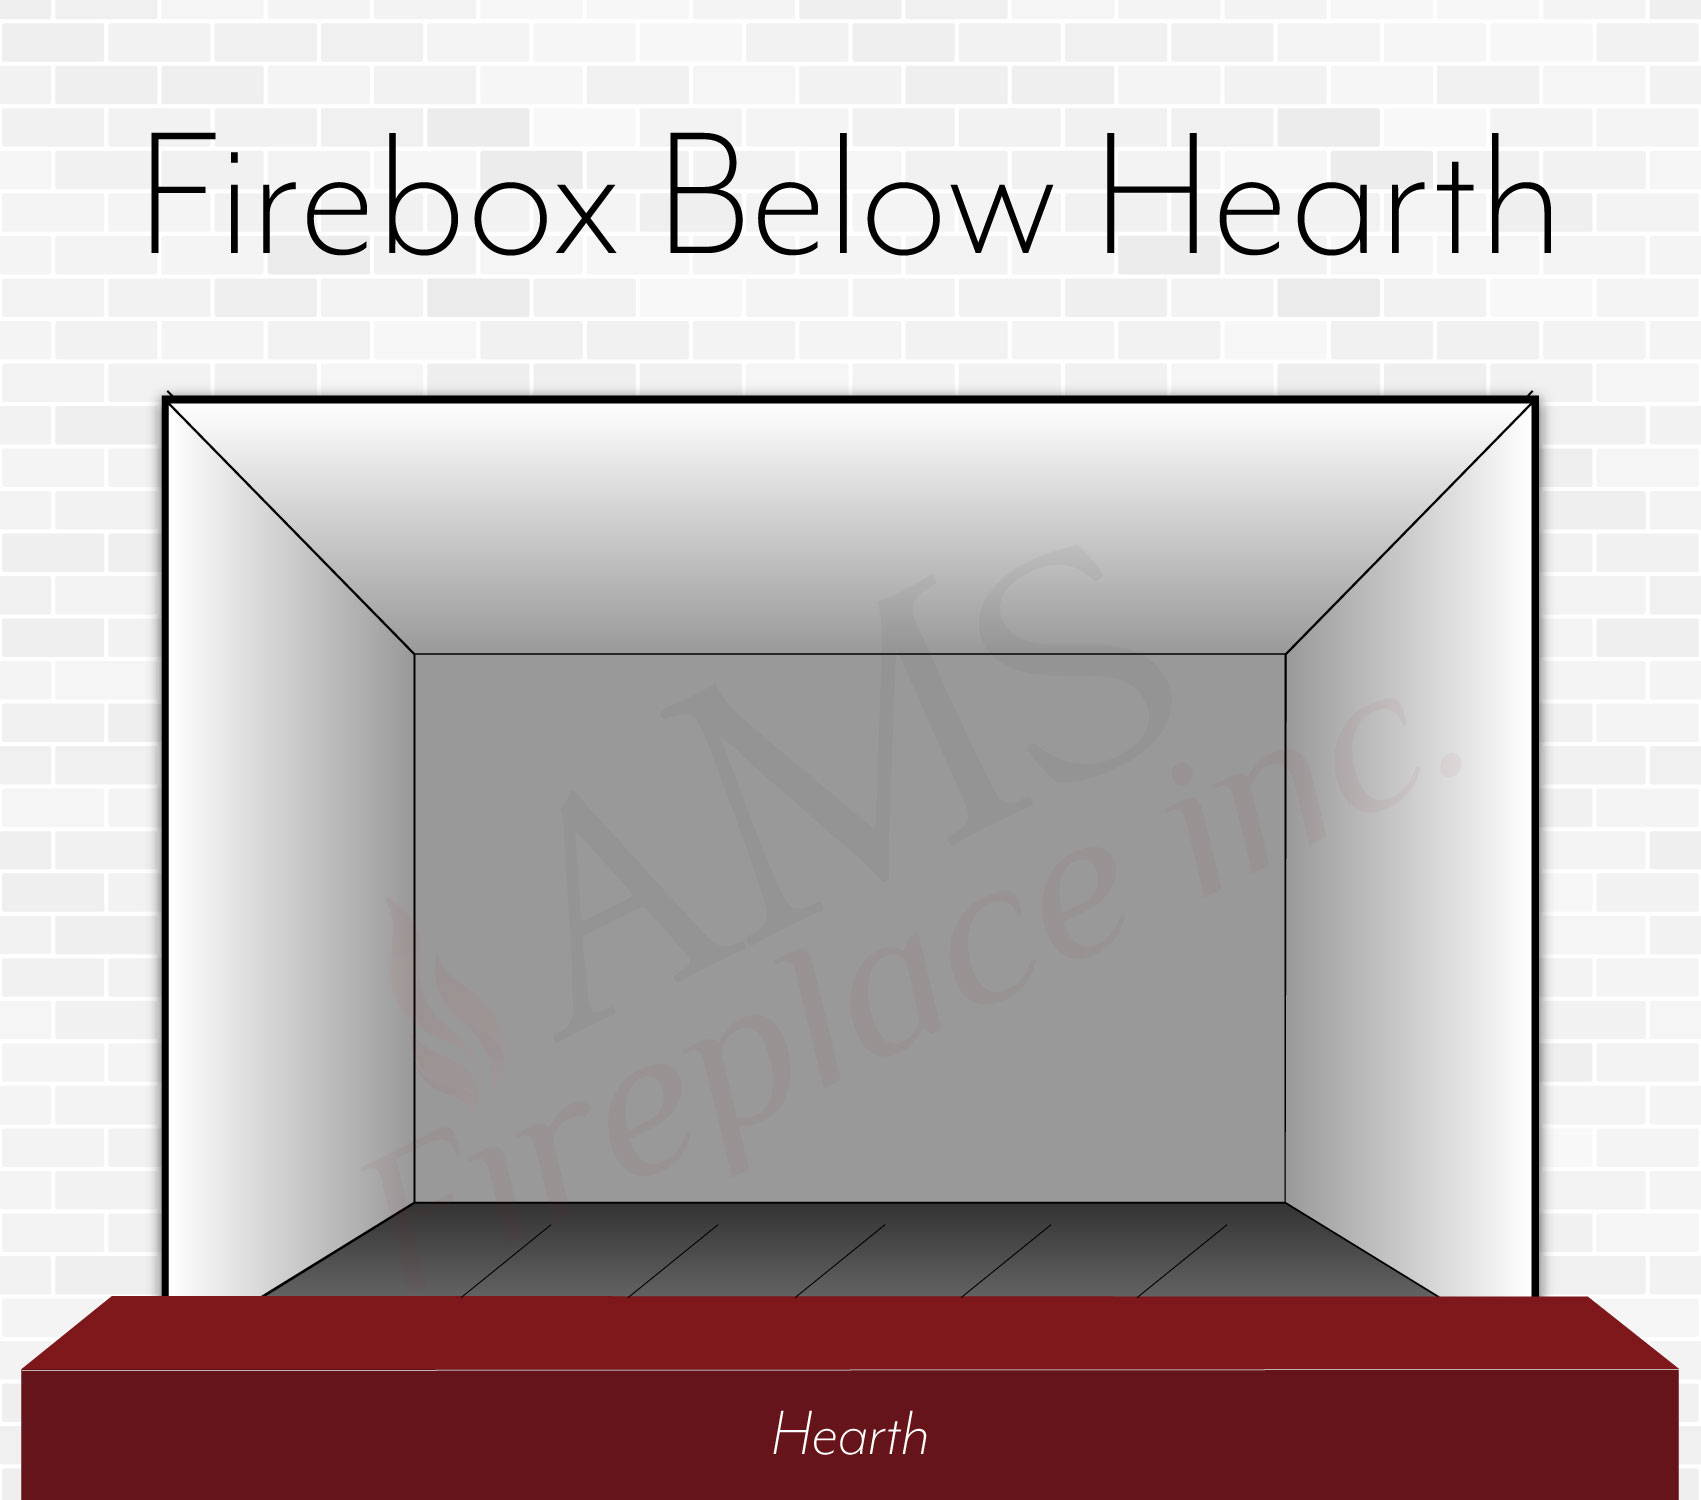 Fire Bed Below Hearth -  Front View